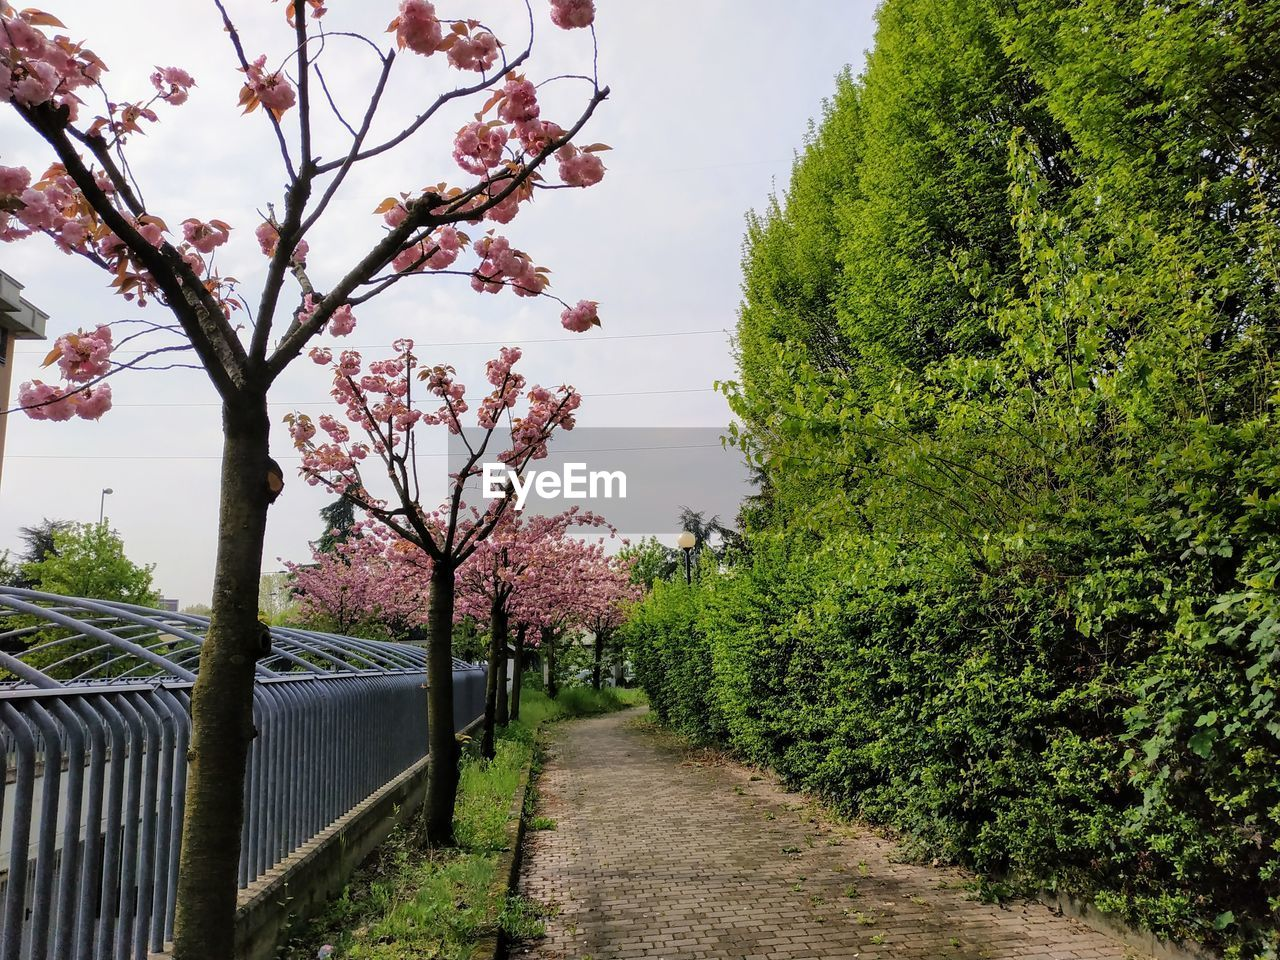 plant, tree, growth, nature, sky, beauty in nature, the way forward, no people, footpath, direction, flower, day, flowering plant, tranquility, green color, outdoors, tranquil scene, blossom, freshness, transportation, springtime, cherry blossom